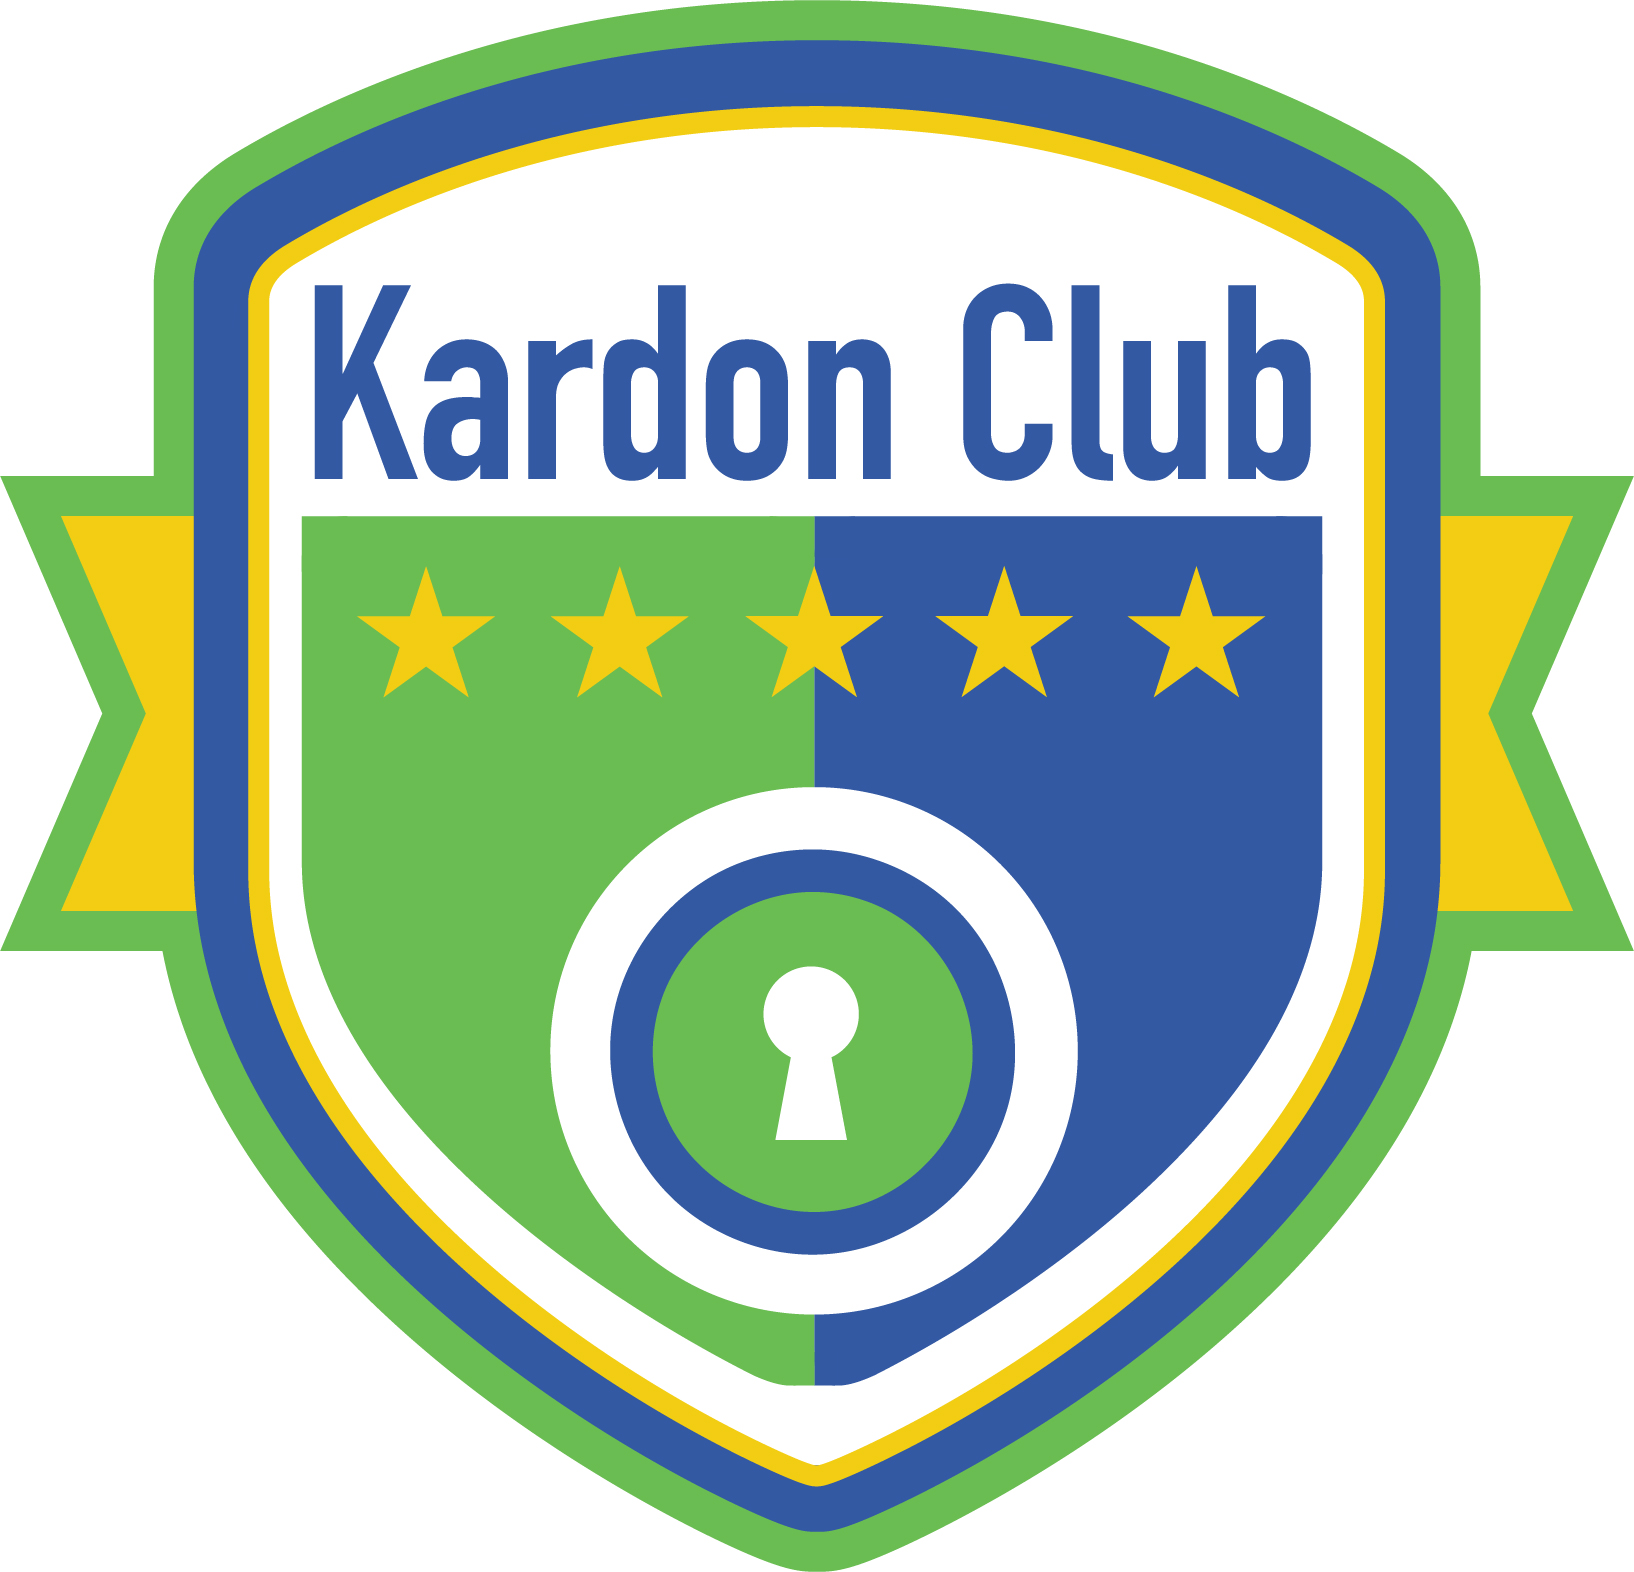 Kardon Club Logo